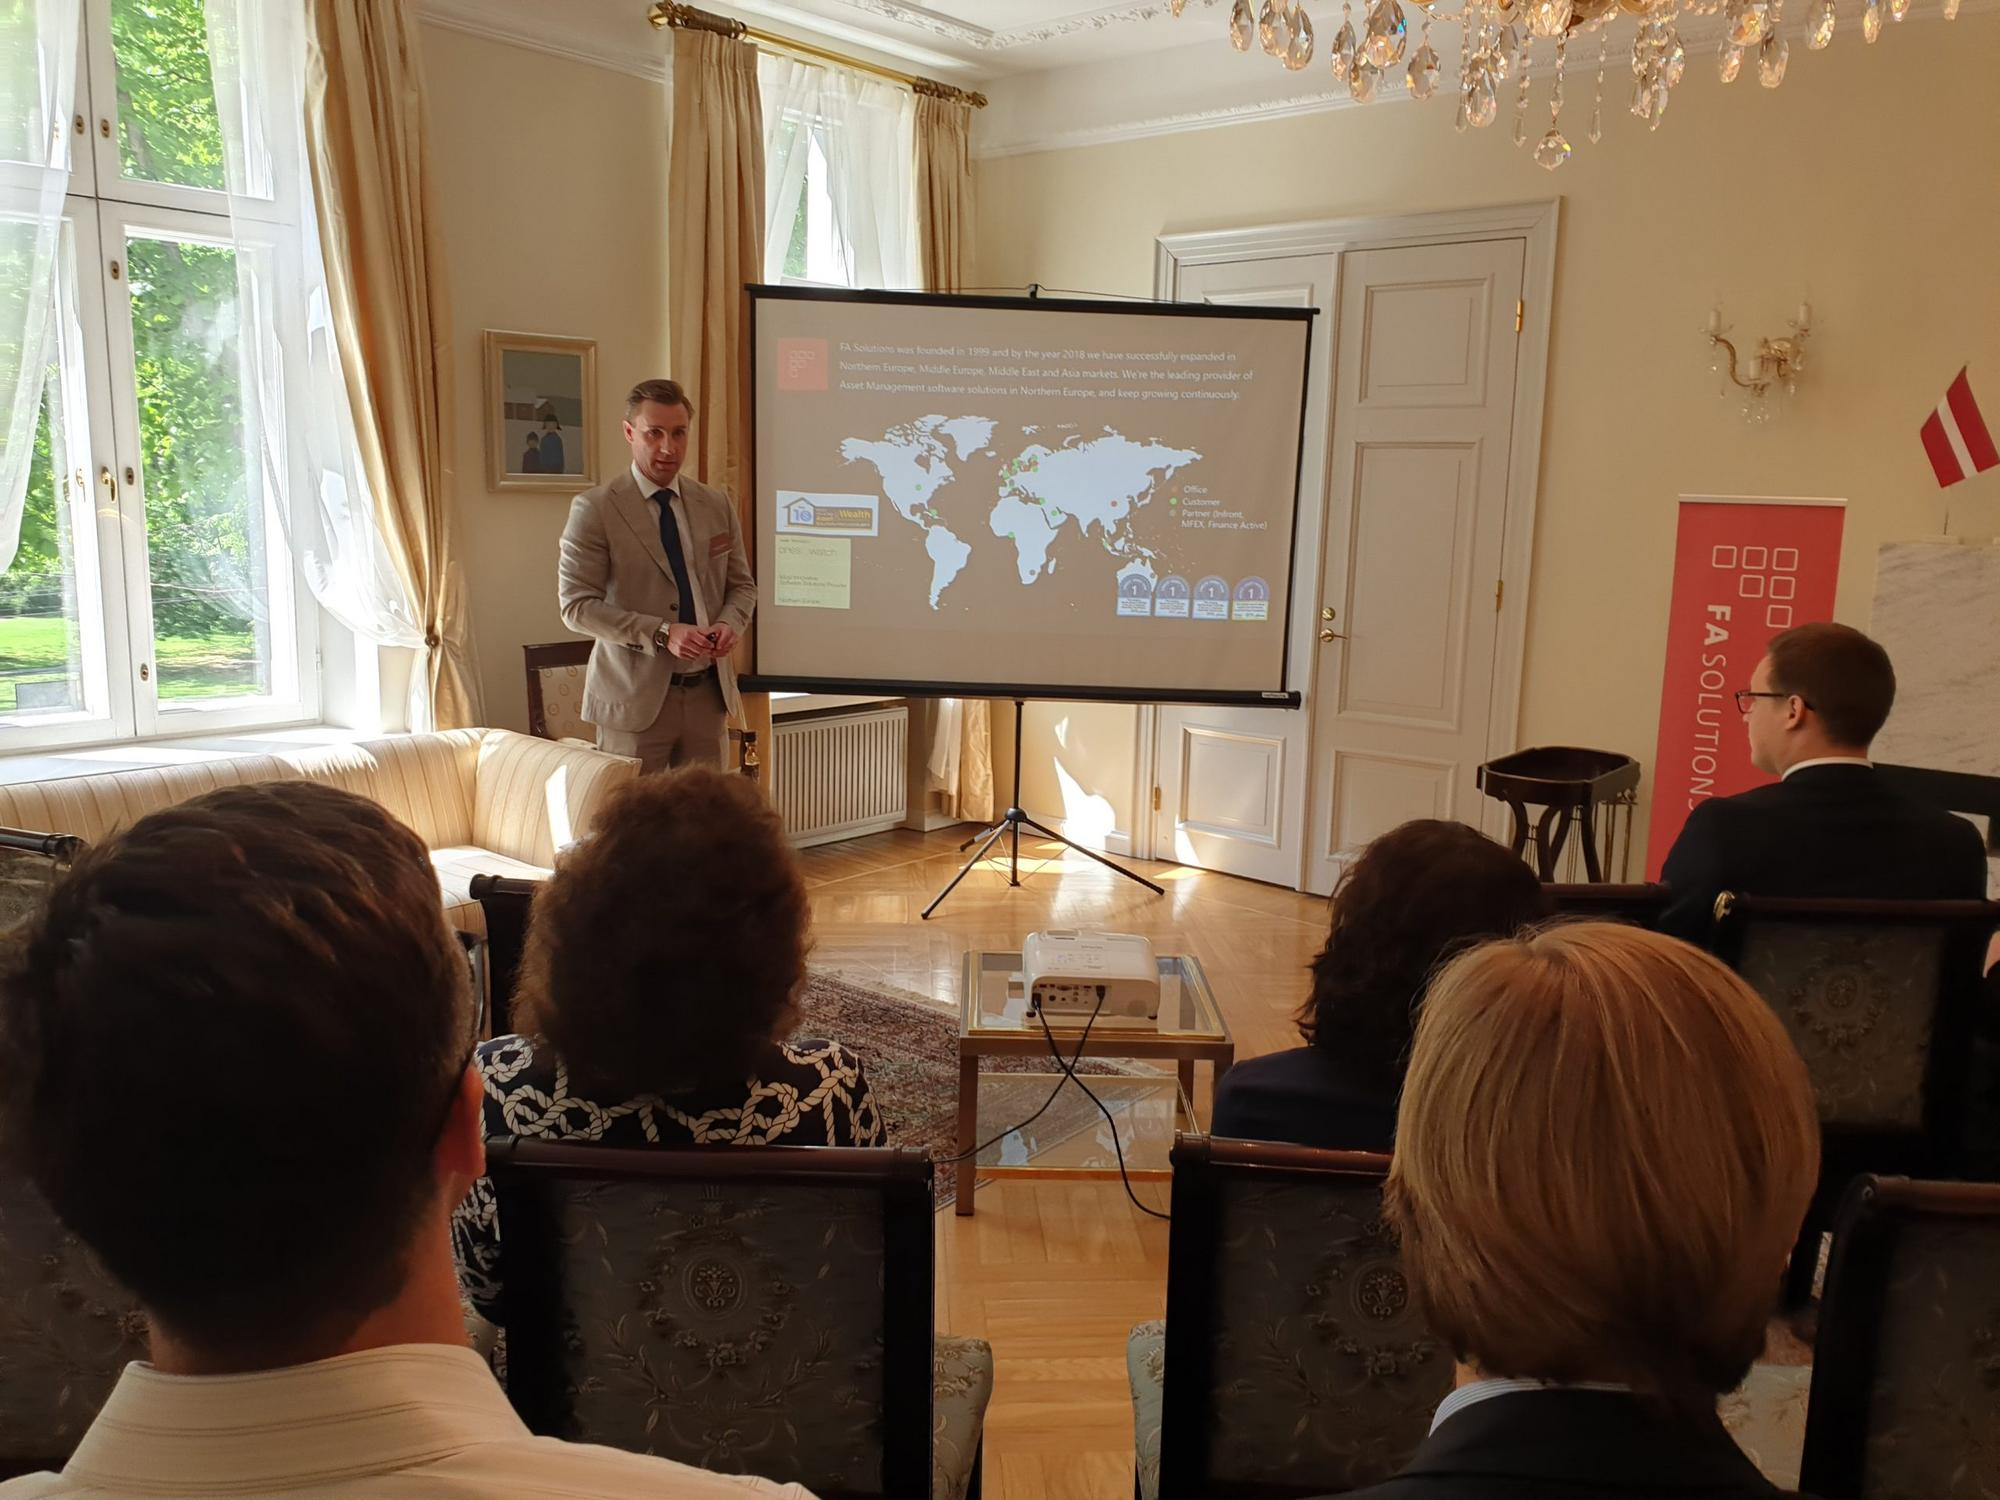 Hannes Helenius presenting at the Finnish Embassy in Riga, May 2019